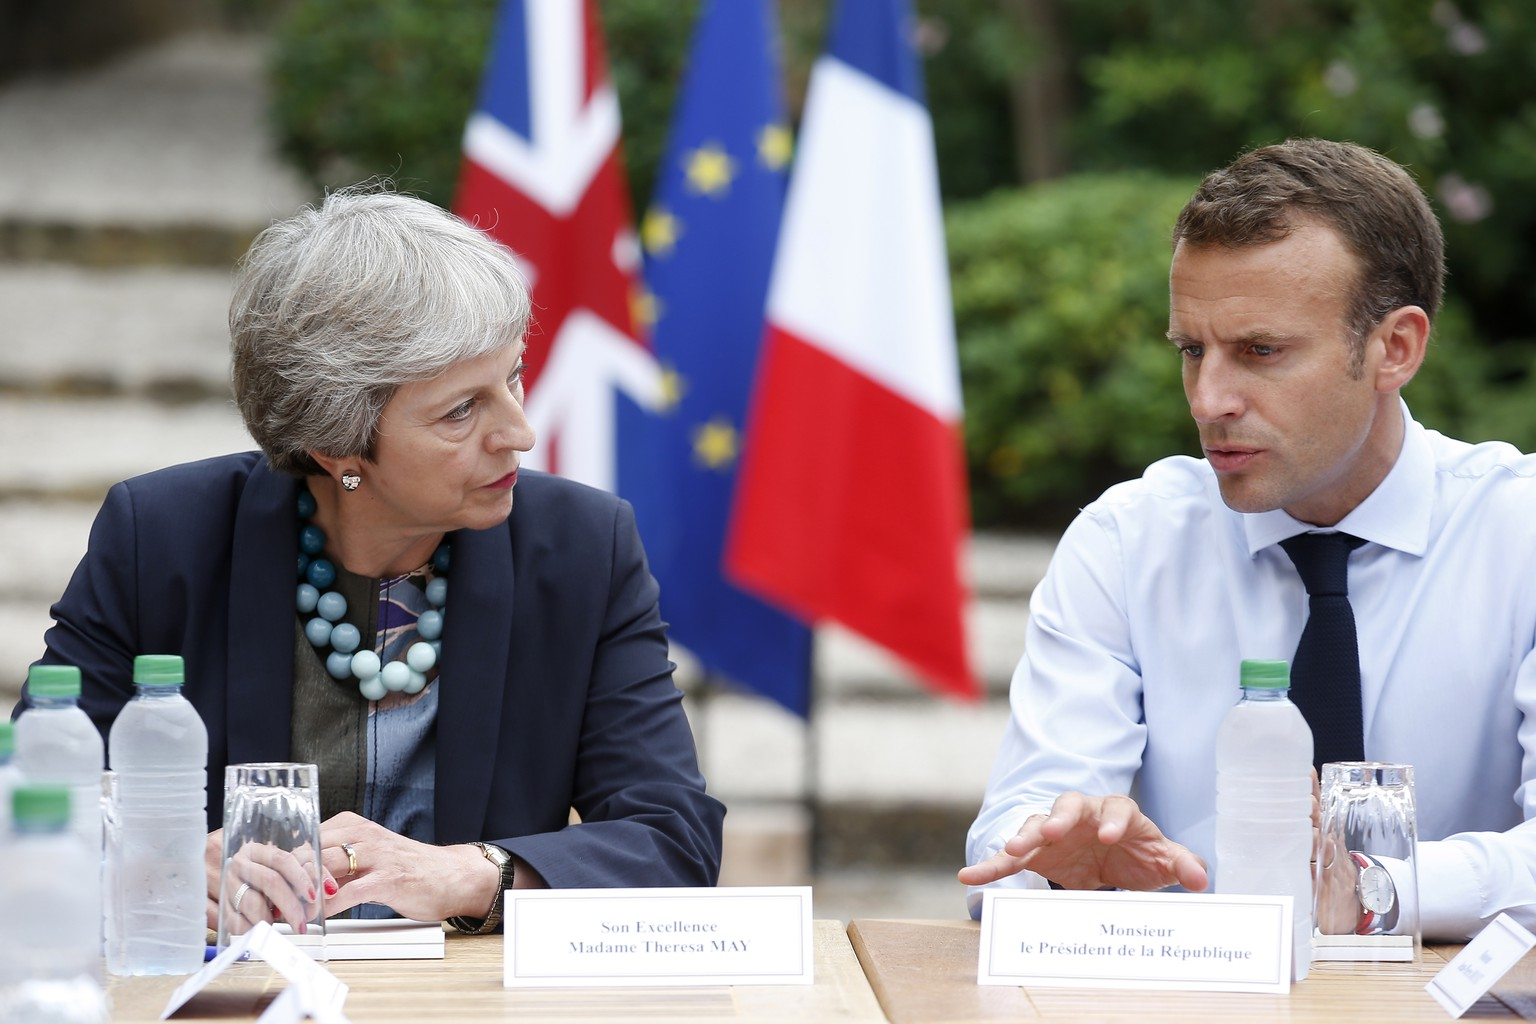 epa06925746 French President Emmanuel Macron (R) meets with British Prime Minister Theresa May (L) at the Fort de Bregancon in Bornes-les-Mimosas, southern France, 03 August 2018. May cut her holiday for this meeting at the French presidential summer retreat.  EPA/SEBASTIEN NOGIER / POOL MAXPPP OUT